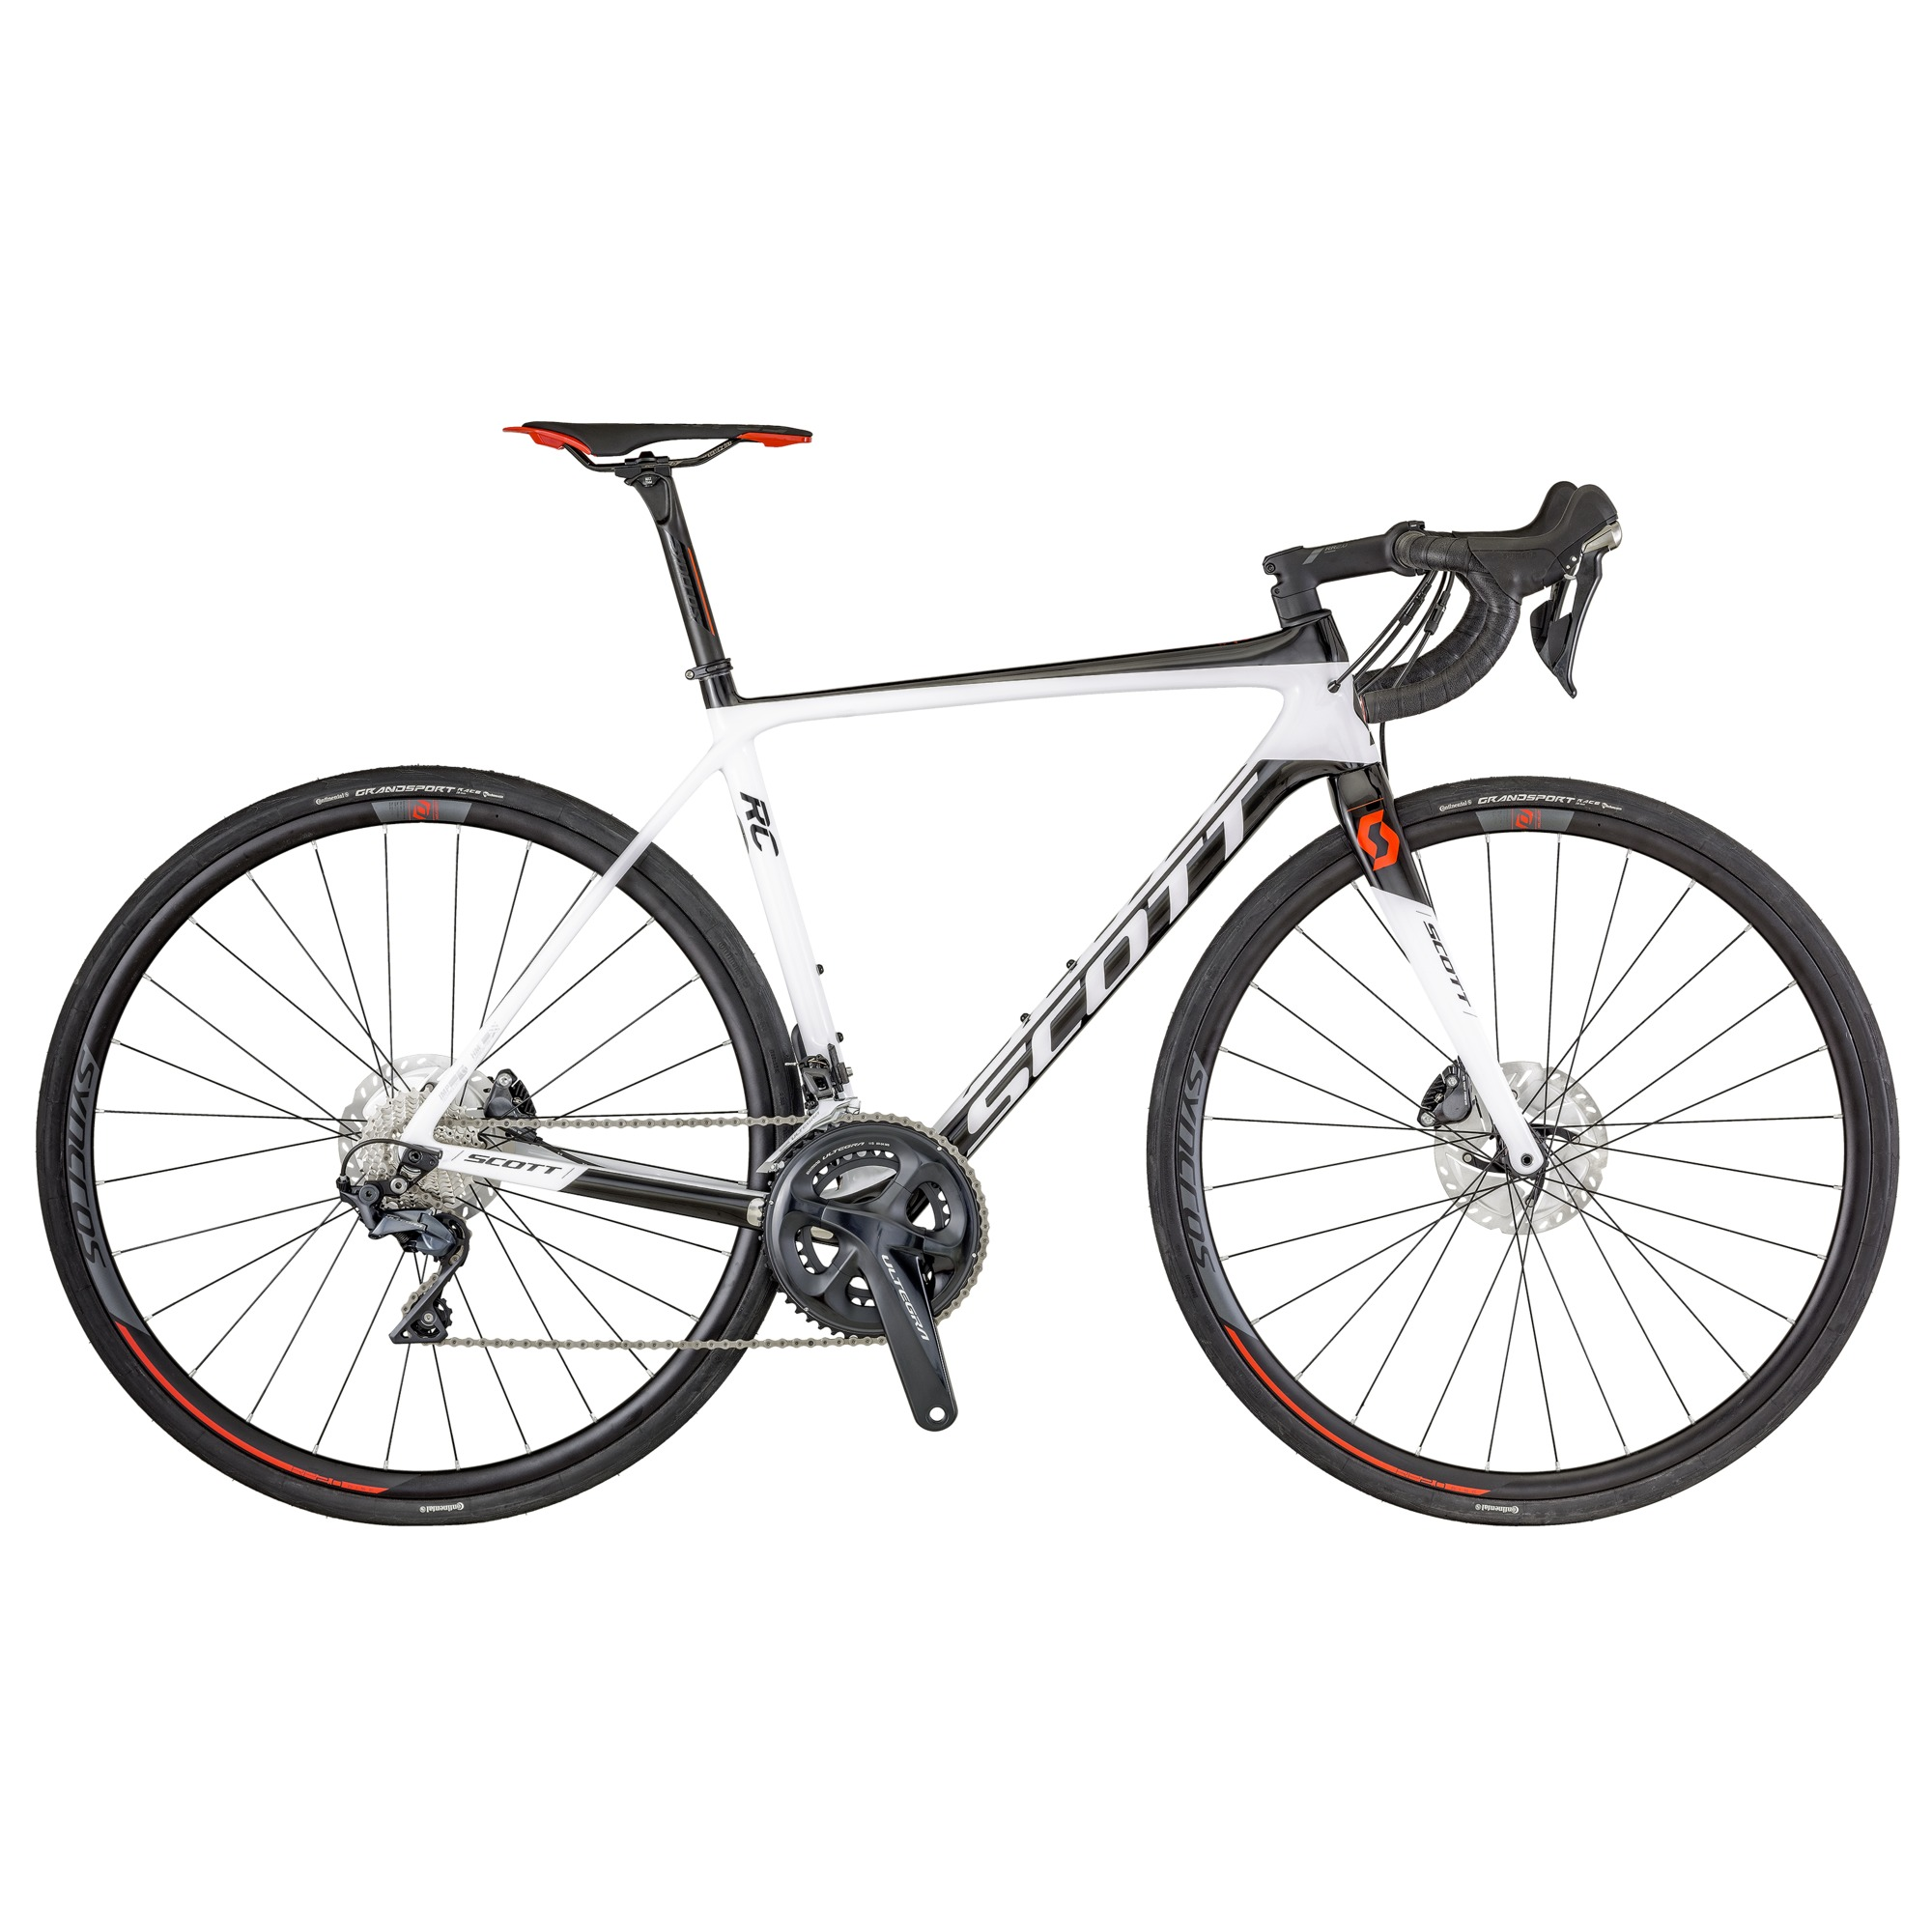 SCOTT Addict RC 20 Disc Bike 2XL61 - Zweirad Homann